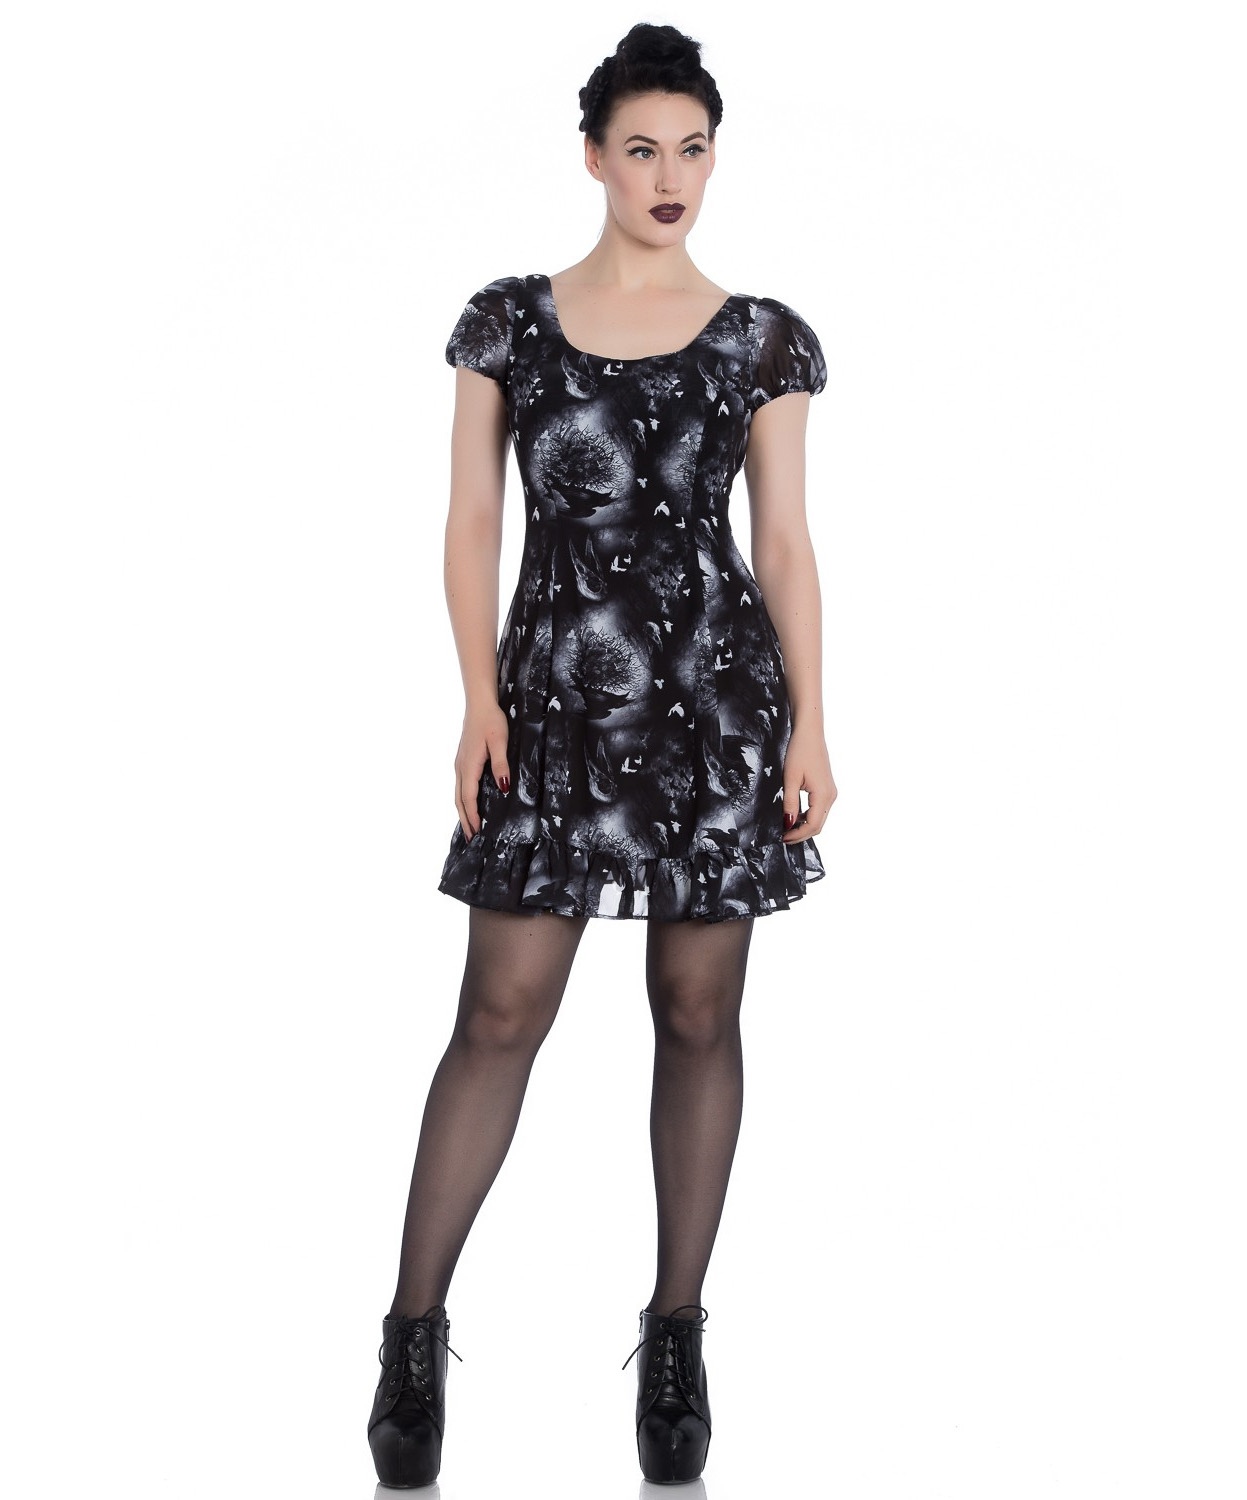 Hell-Bunny-Alchemy-Gothic-Black-Skater-Mini-Dress-ASH-Crows-Skulls-All-Sizes thumbnail 19